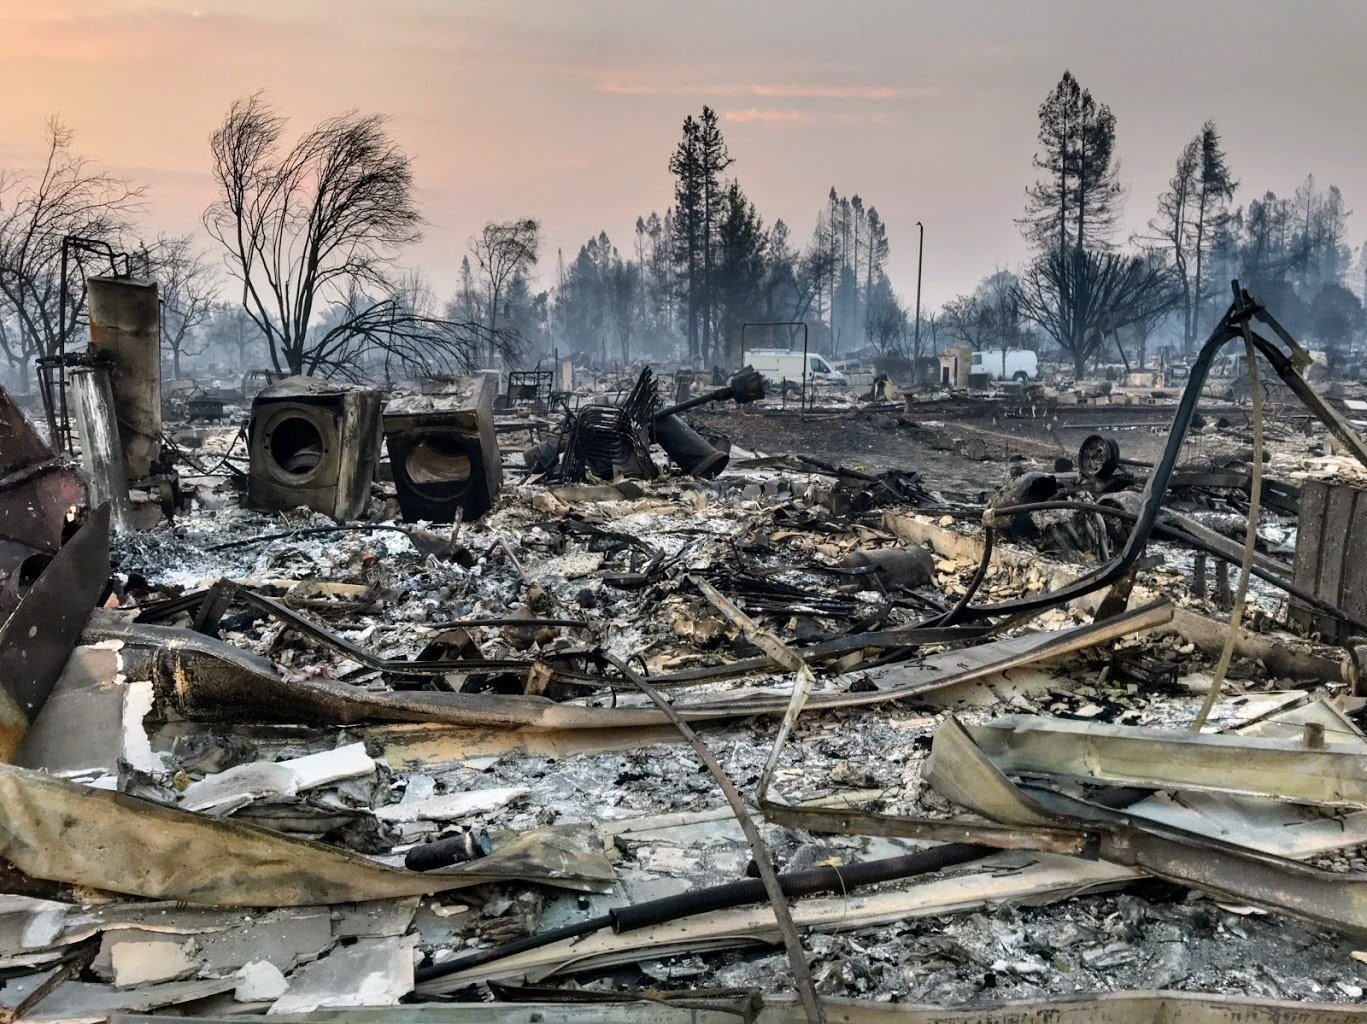 Picture of fire damage in Santa Rosa, Calif. courtesy of CNN.